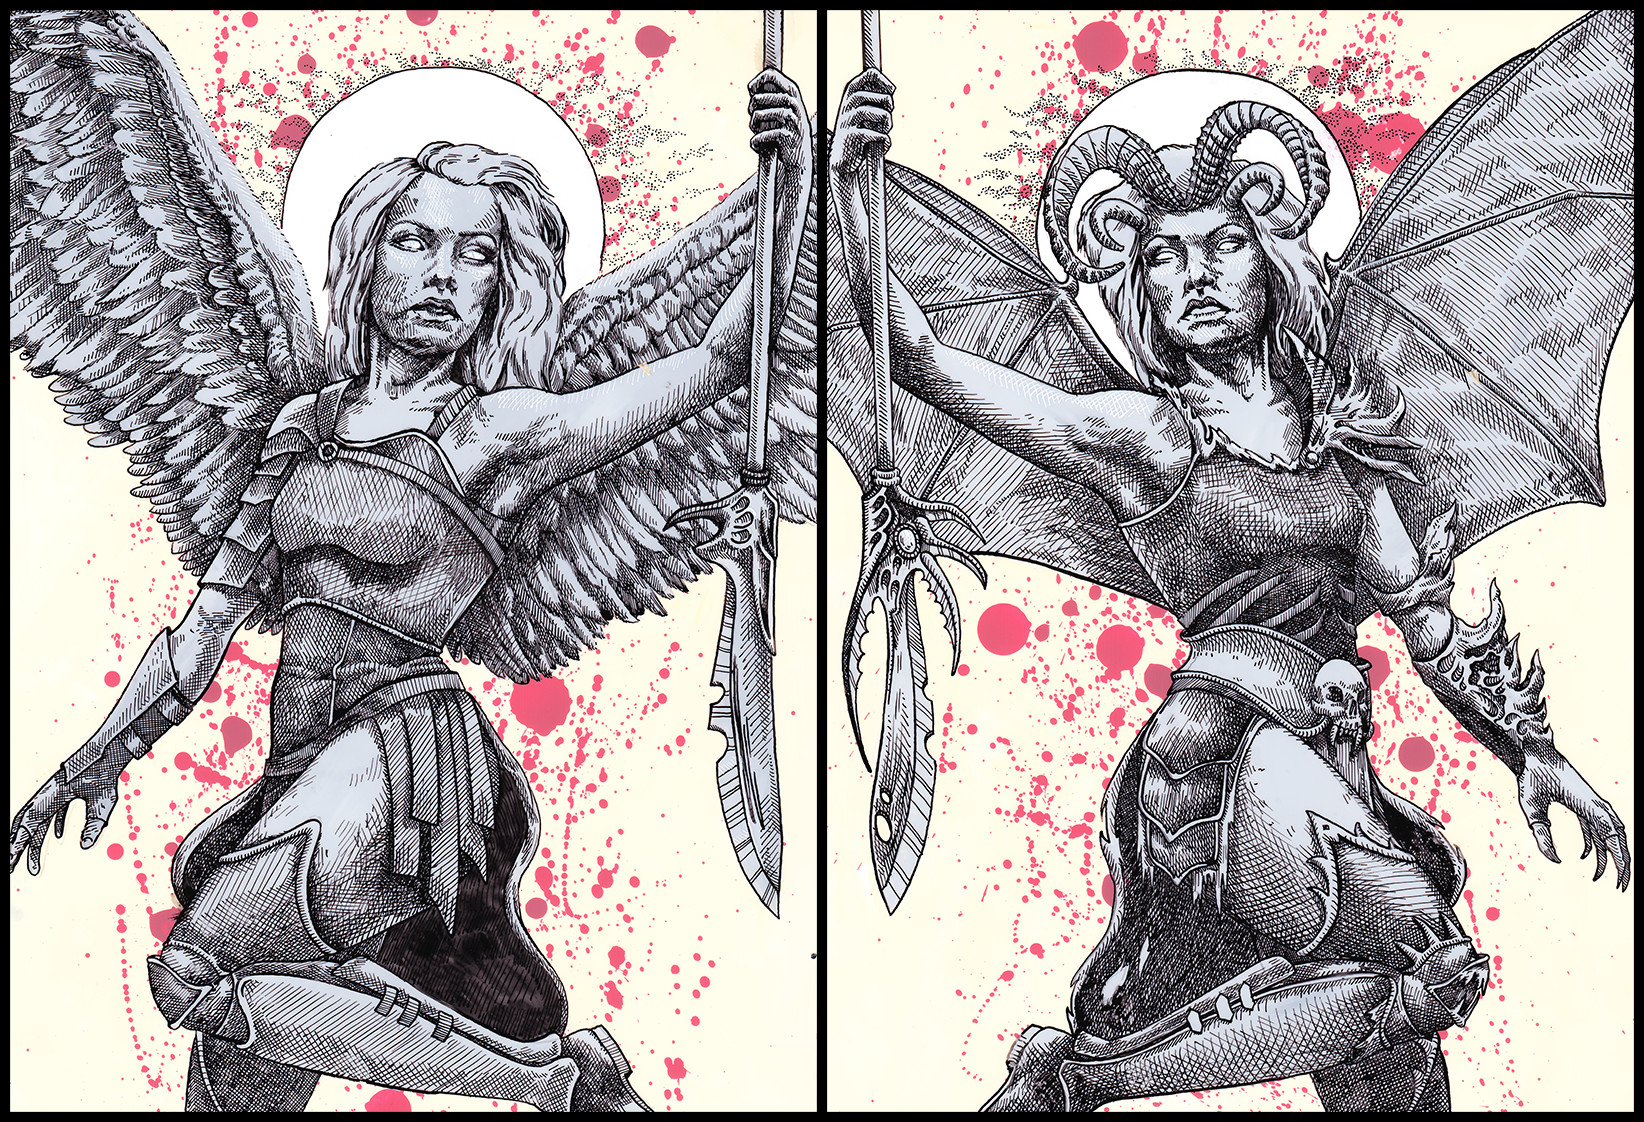 Two individual pieces come together to form the entire picture, highlighting the fact that good and evil are mirror images of each other.